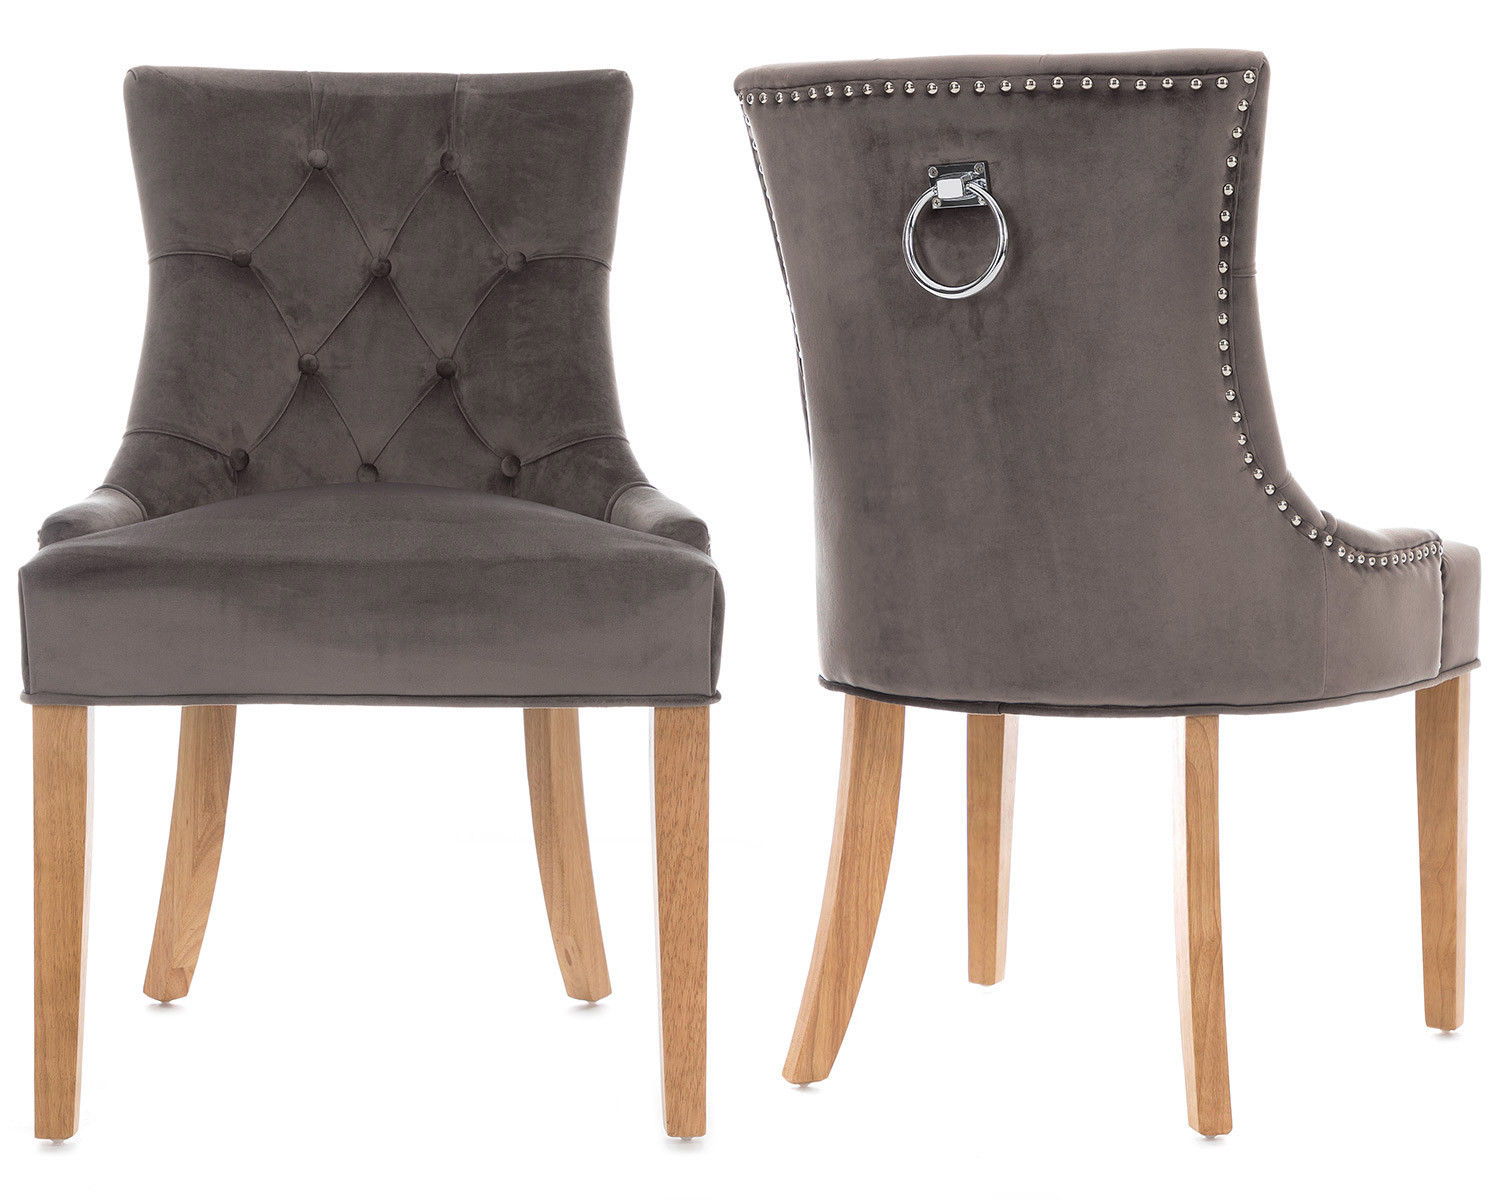 Details About 2 Scoop Button Back Dining Chairs In Grey Velvet Chrome Knocker Oak Legs